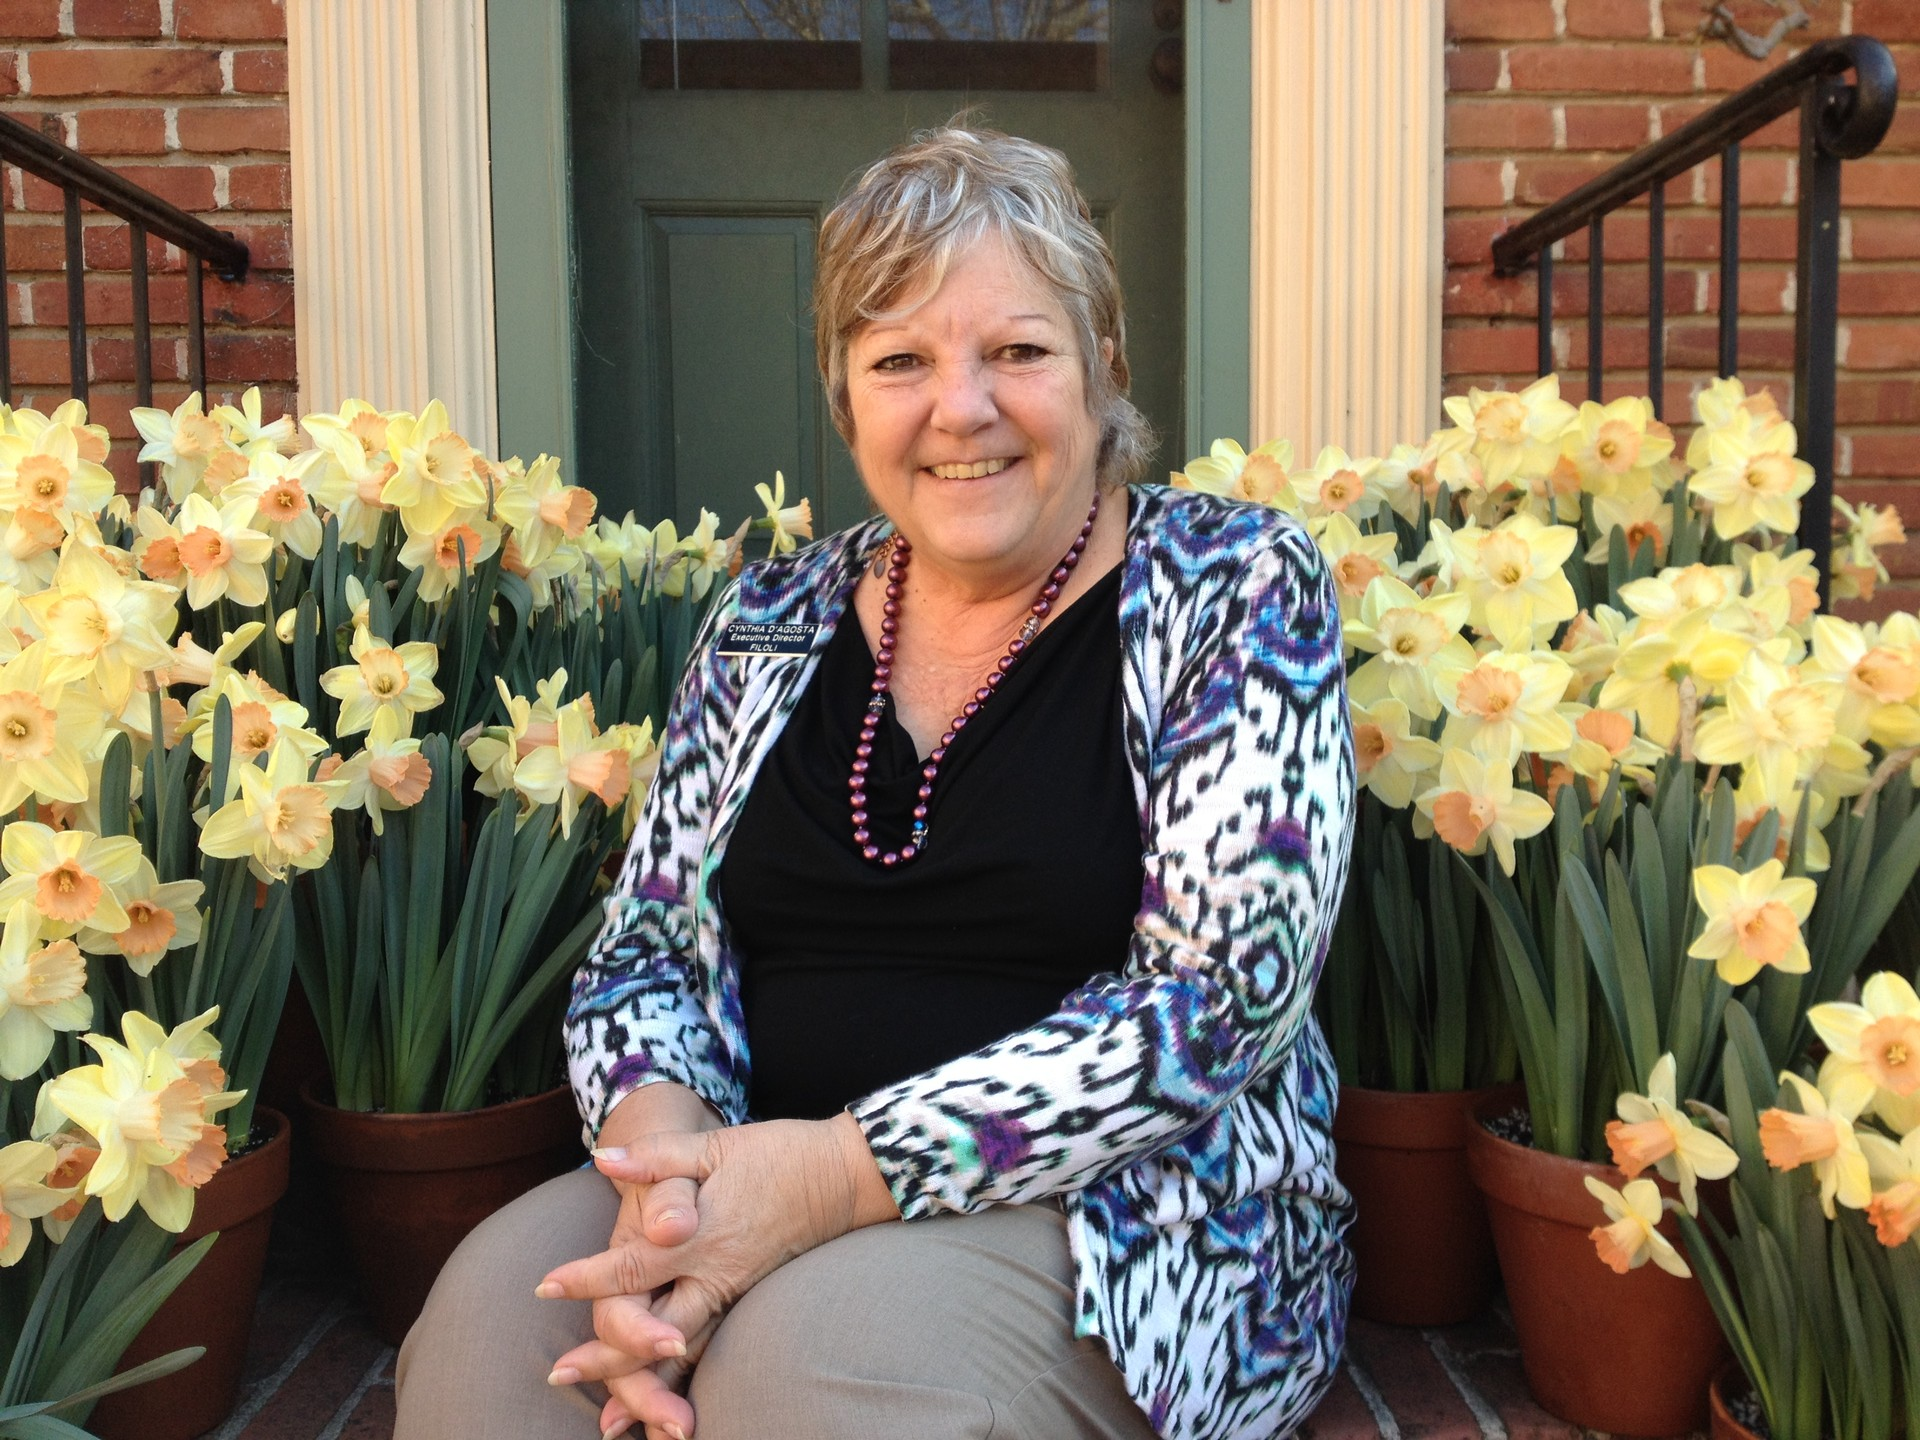 Cynthia D'Agosta has left her position at Filoli, a beloved California historical Landmark in Woodside.